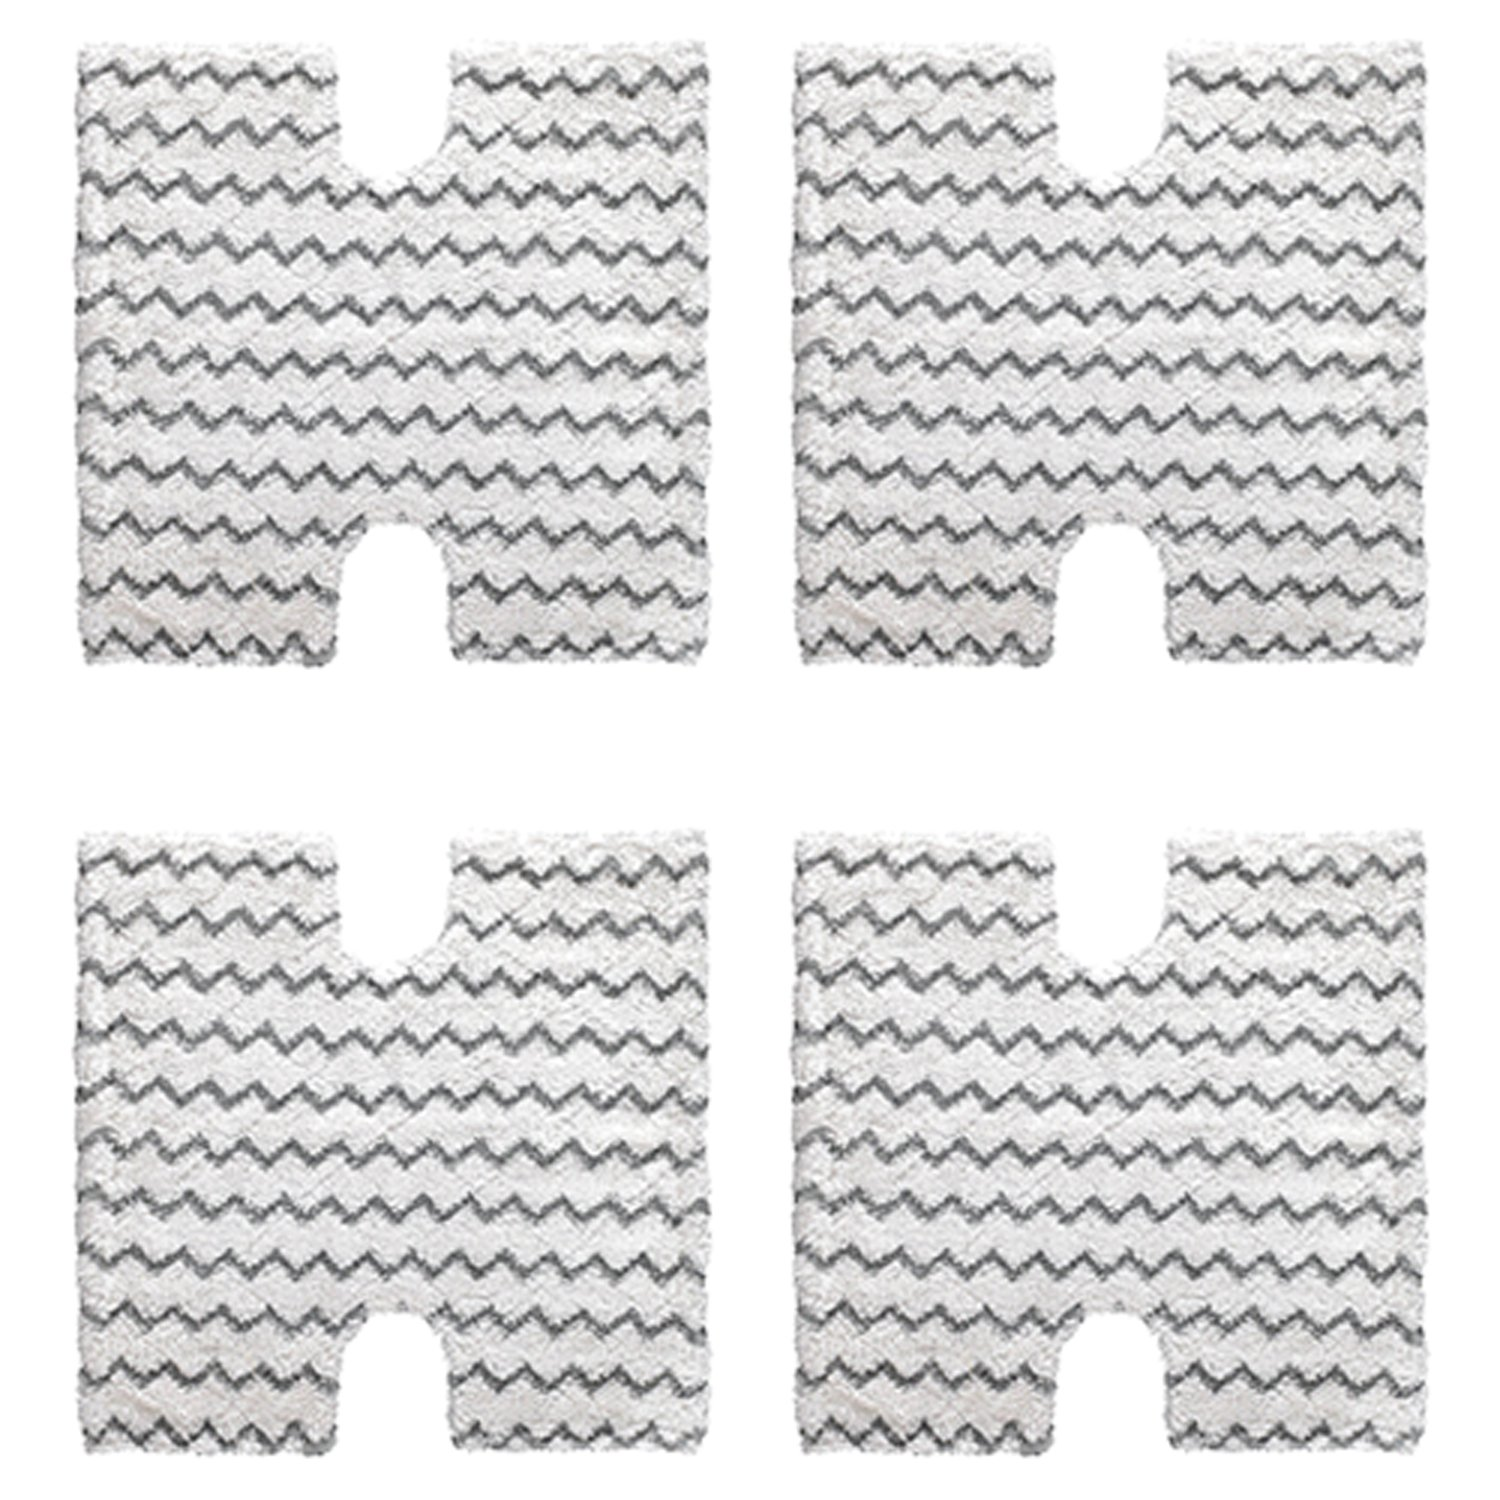 Amyehouse 4-Pack Shark Touch Free Dirt Grip Washable Microfiber Pad Repacememt for Shark Lift-Away/Genius Steam Mop 3973 S3973D S5002 S5003 S6001 S6002 S6003